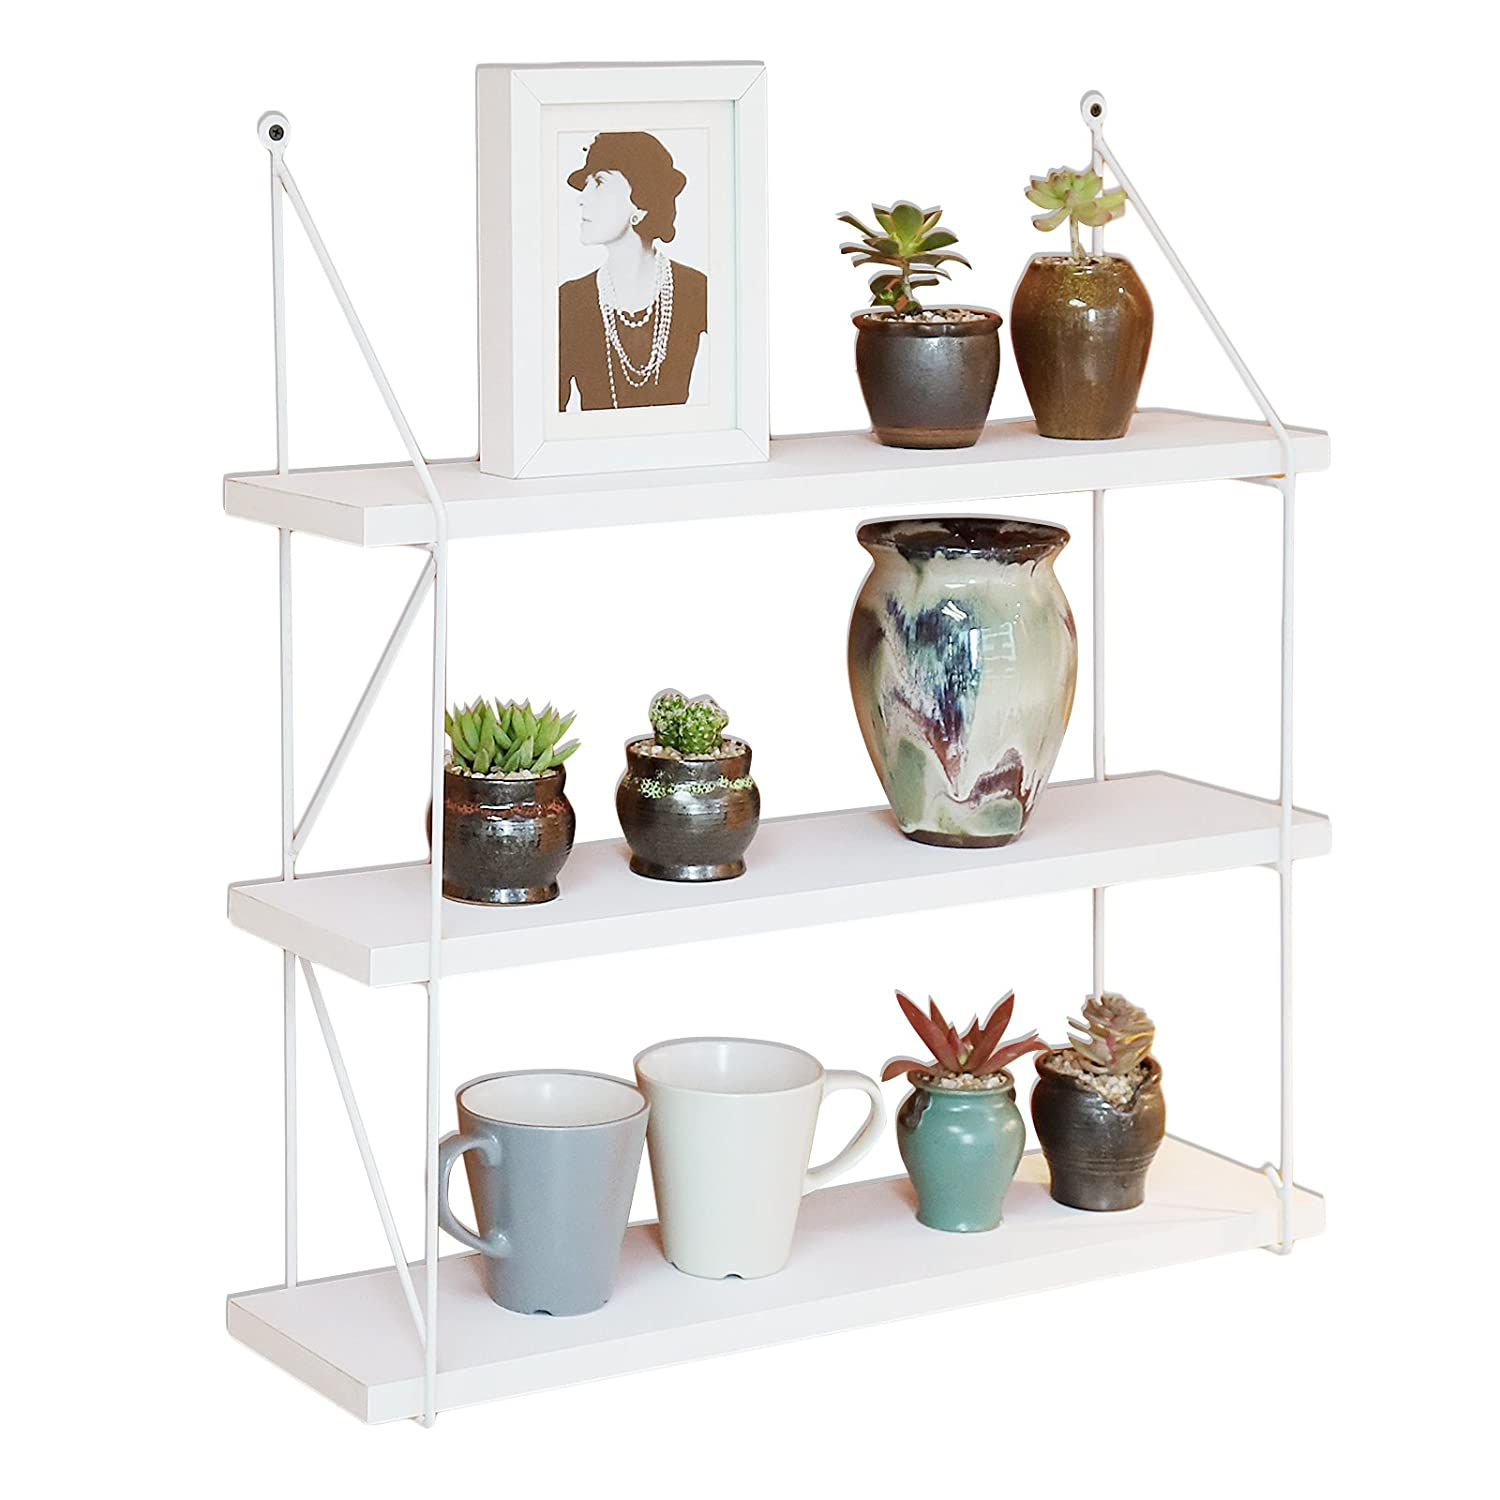 WELLAND 3-Tier Display Wall Shelf Storage Rack Wall Rack Holder Rack, White WSV103-240 White...